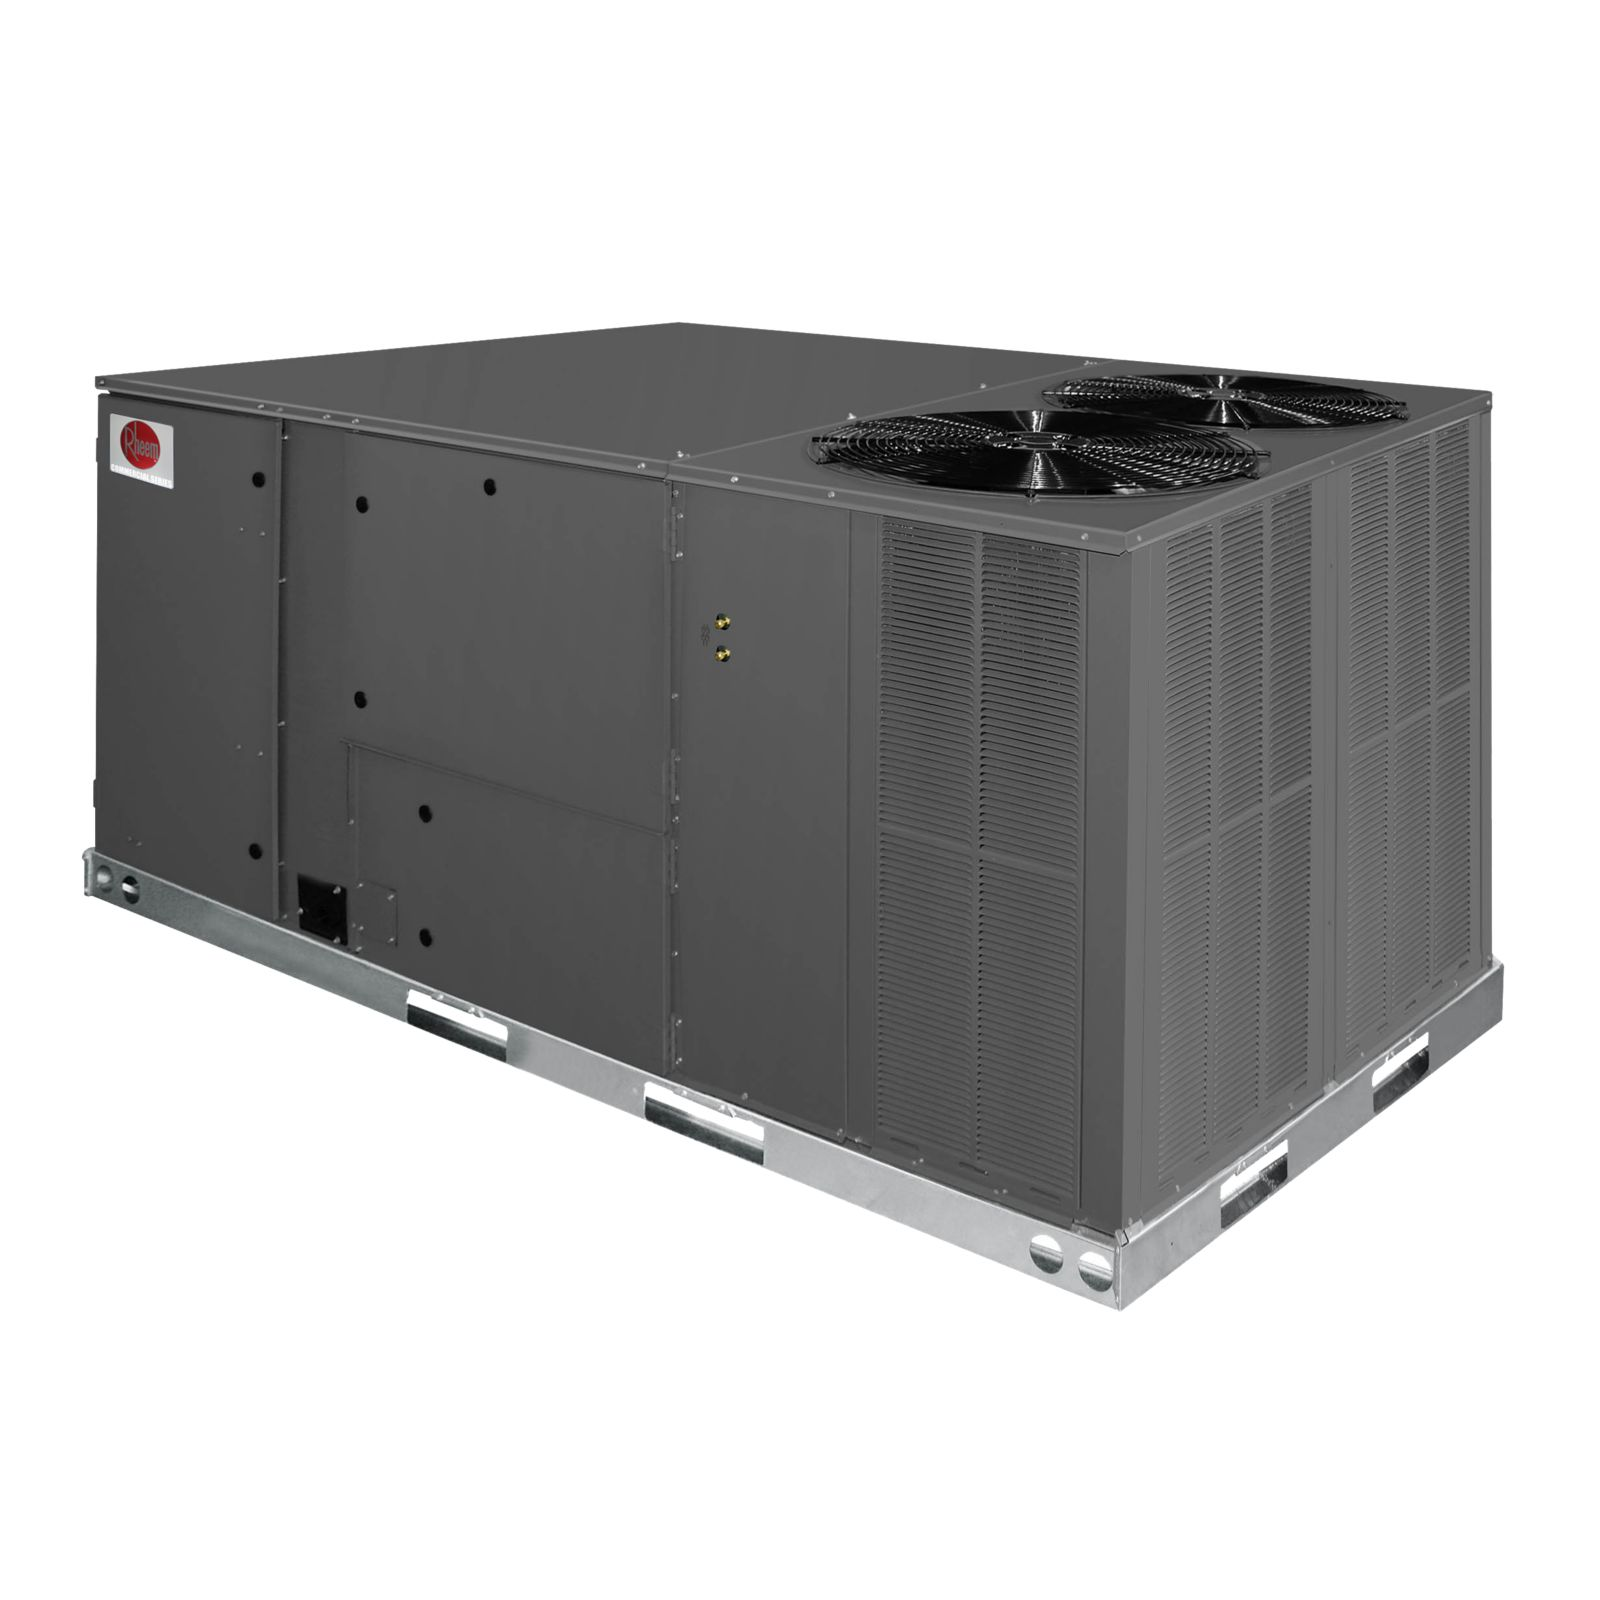 Rheem RJNL-C090DM000 - 7 1/2 Ton Package Heat Pump Unit, Clear Control, 460 V, 3 Ph, 60 Hz, Medium Static Belt Drive